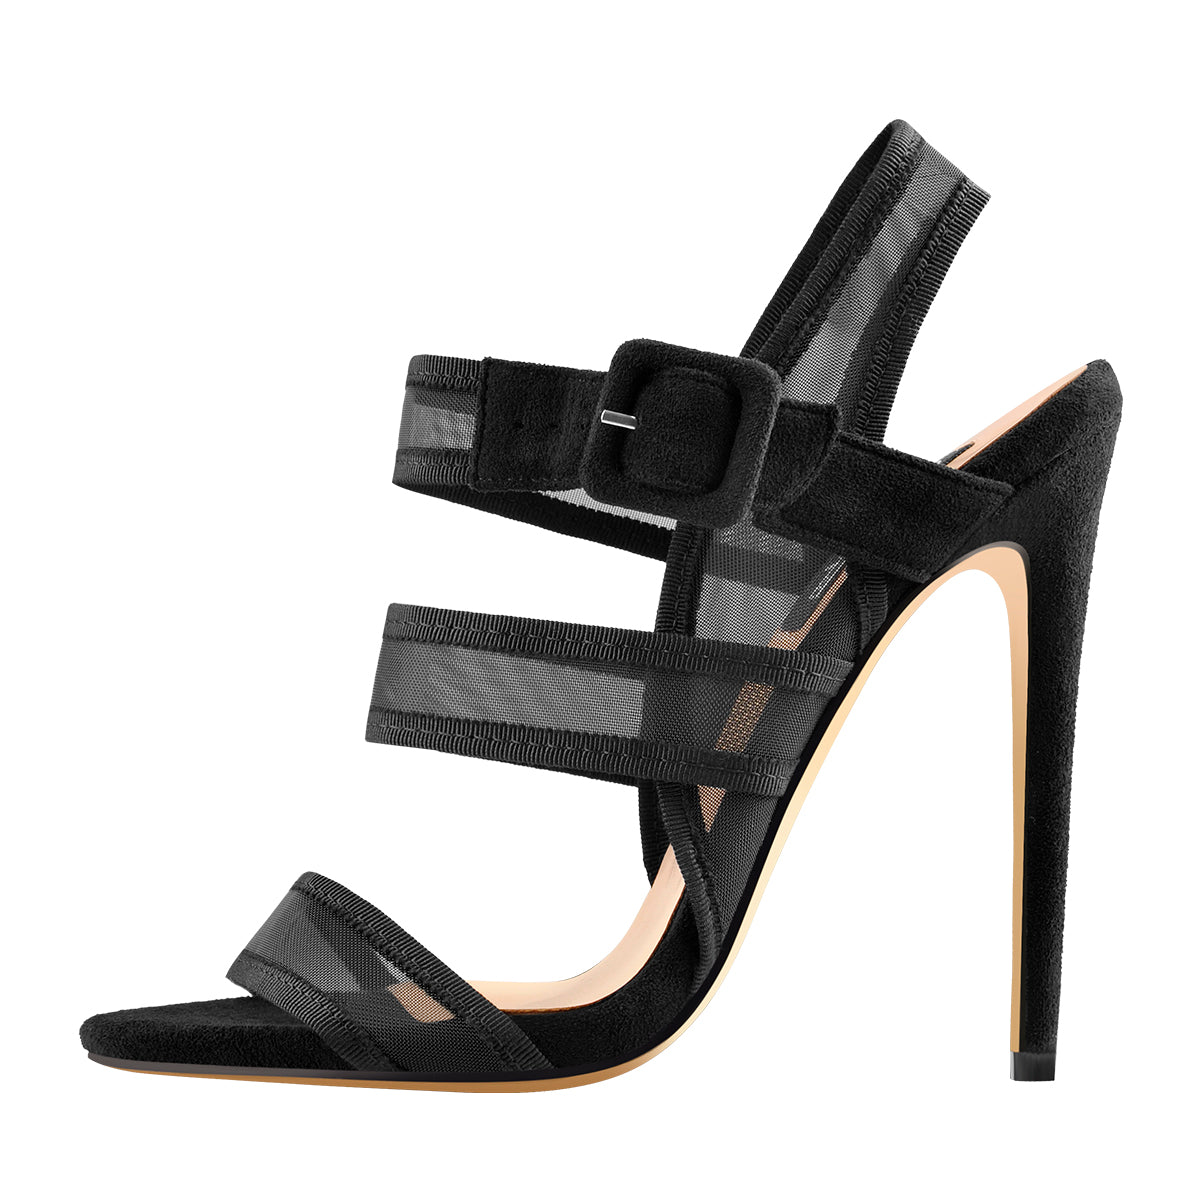 Black Mesh Straps Stiletto Heel Slingback Ankle Buckle Strap Sandals